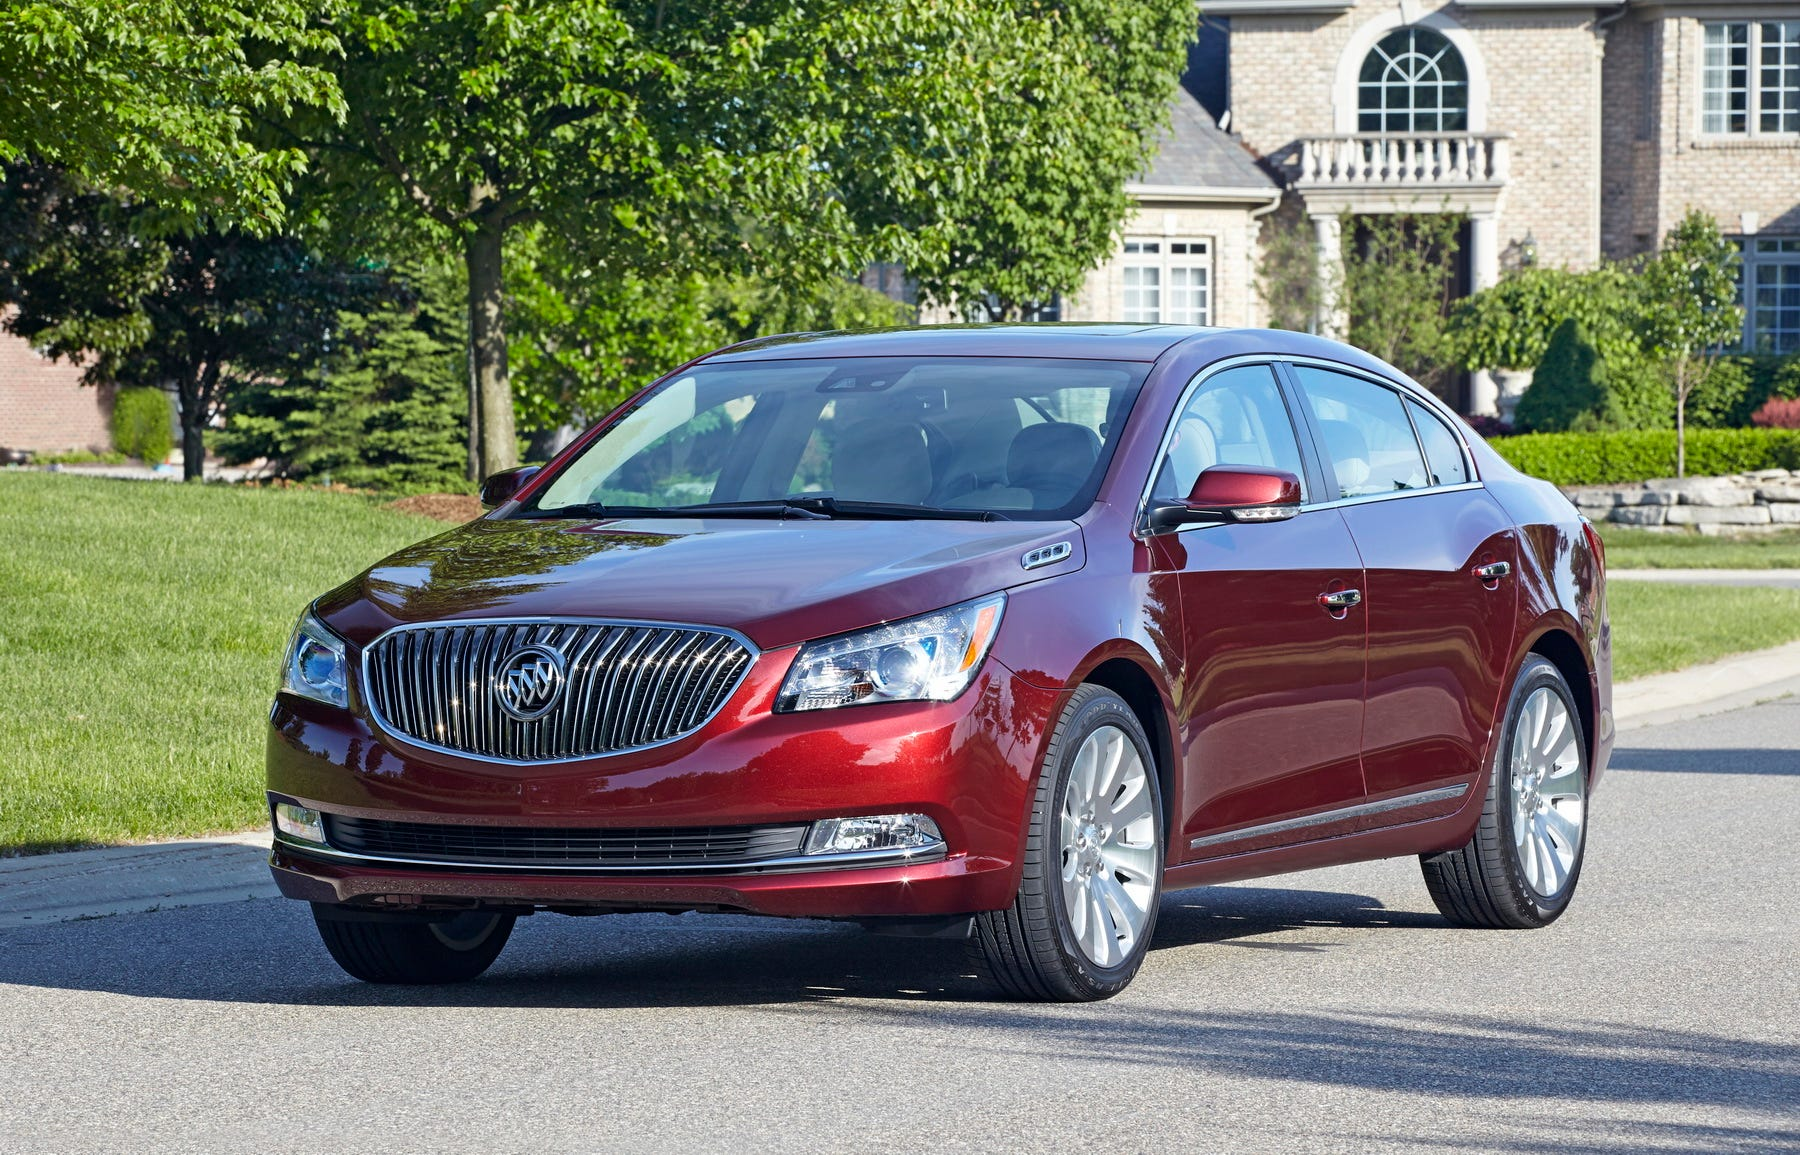 Buick LaCrosse: Parking on Hills